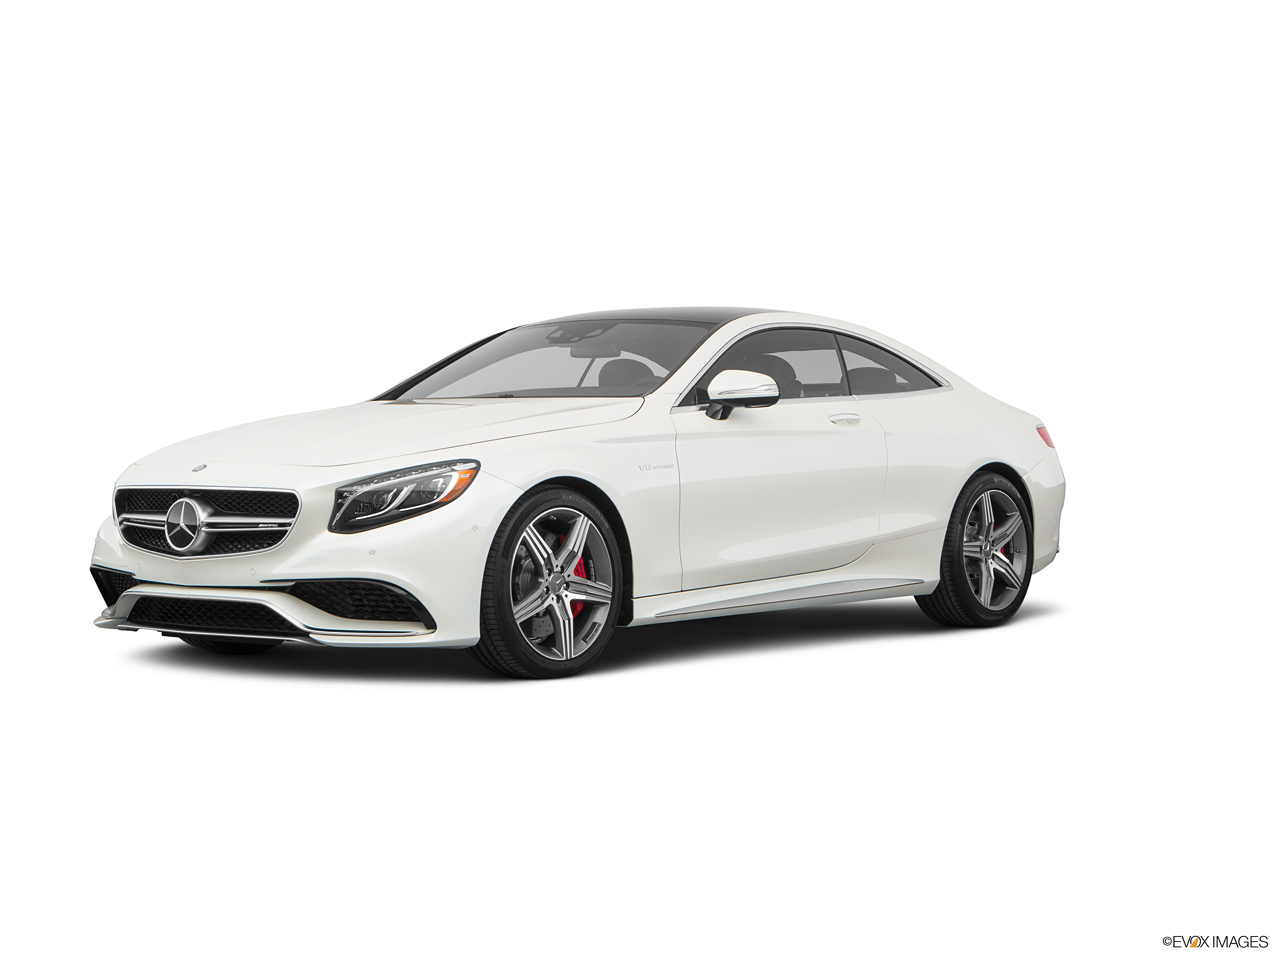 Car pictures list for mercedes benz s 63 amg coupe 2017 for Mercedes benz coupes list